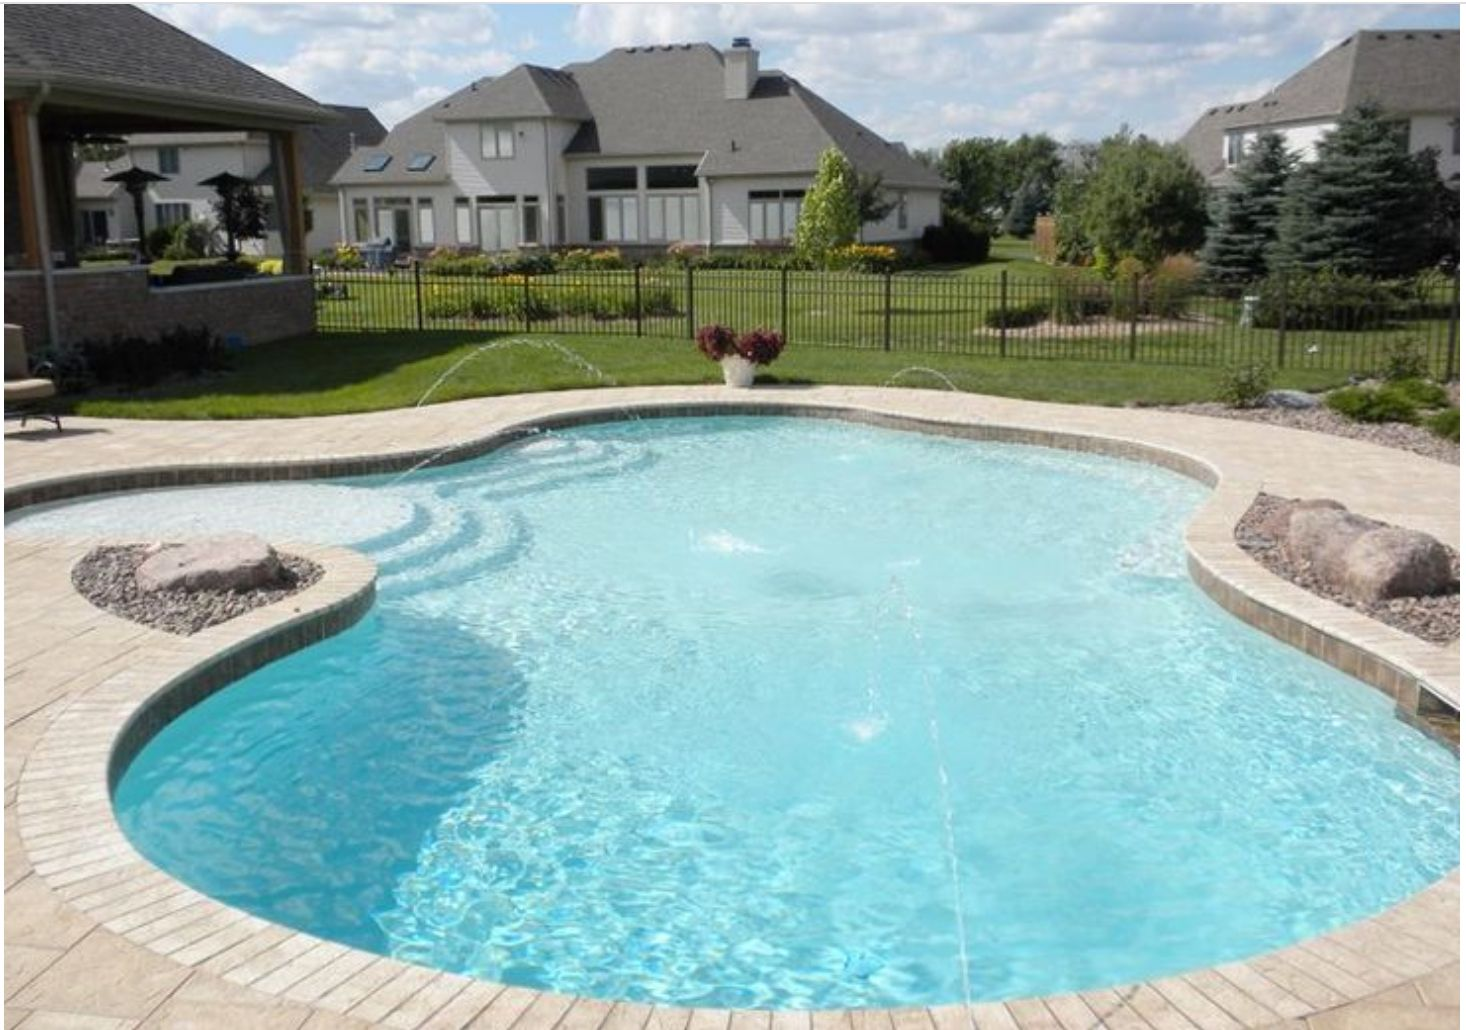 Pin By Nicole Tatzreiter On Outdoor Pool In 2020 Amazing Swimming Pools Backyard Pool Swimming Pool House